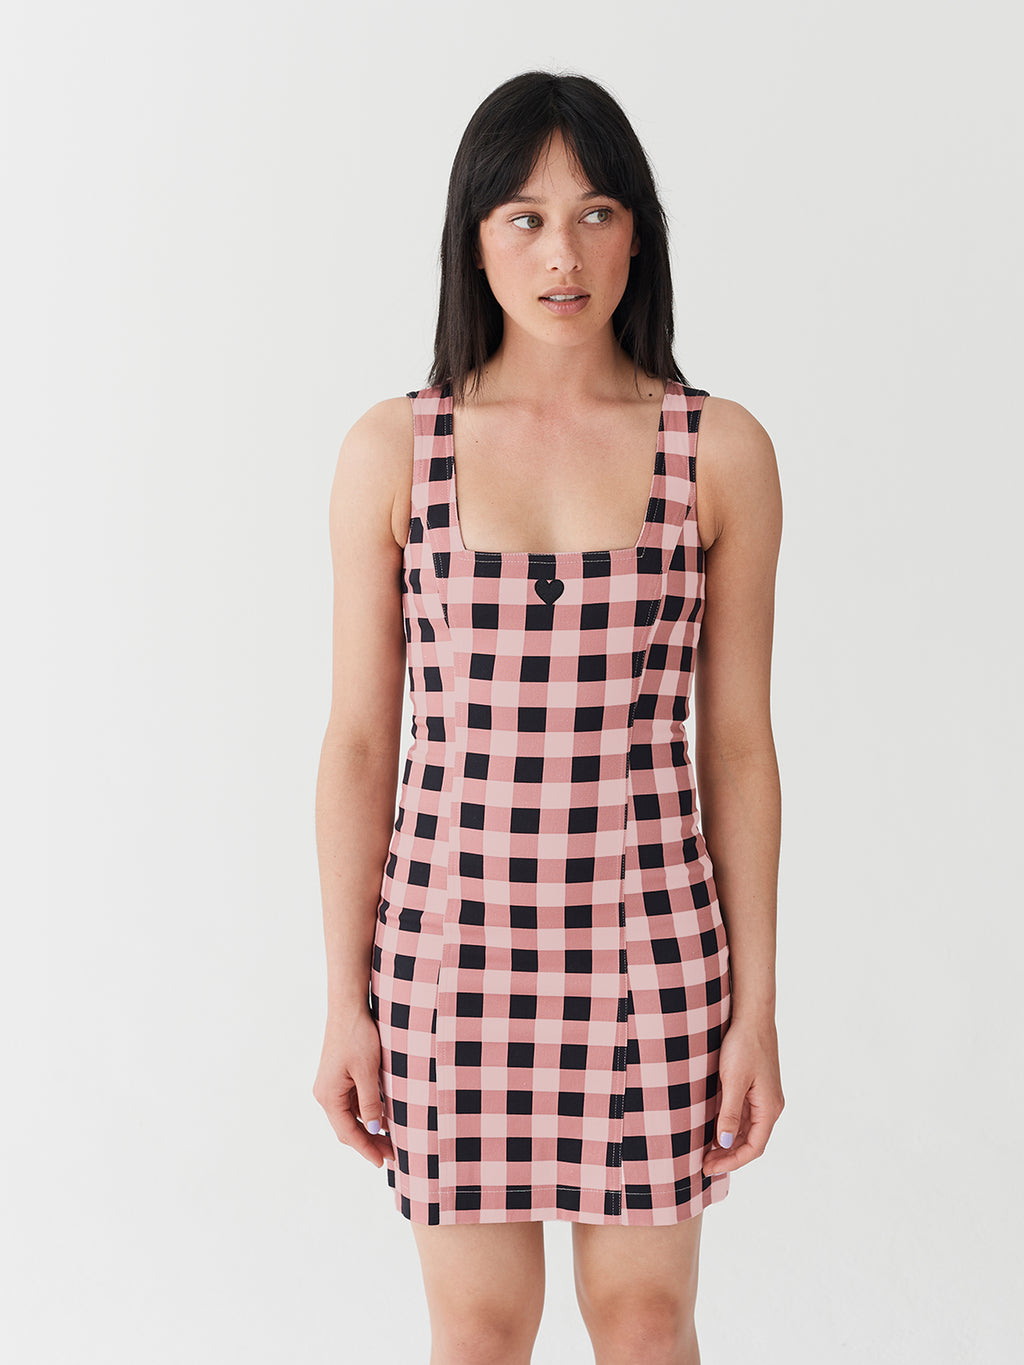 Lazy Oaf Pink Gingham Dress